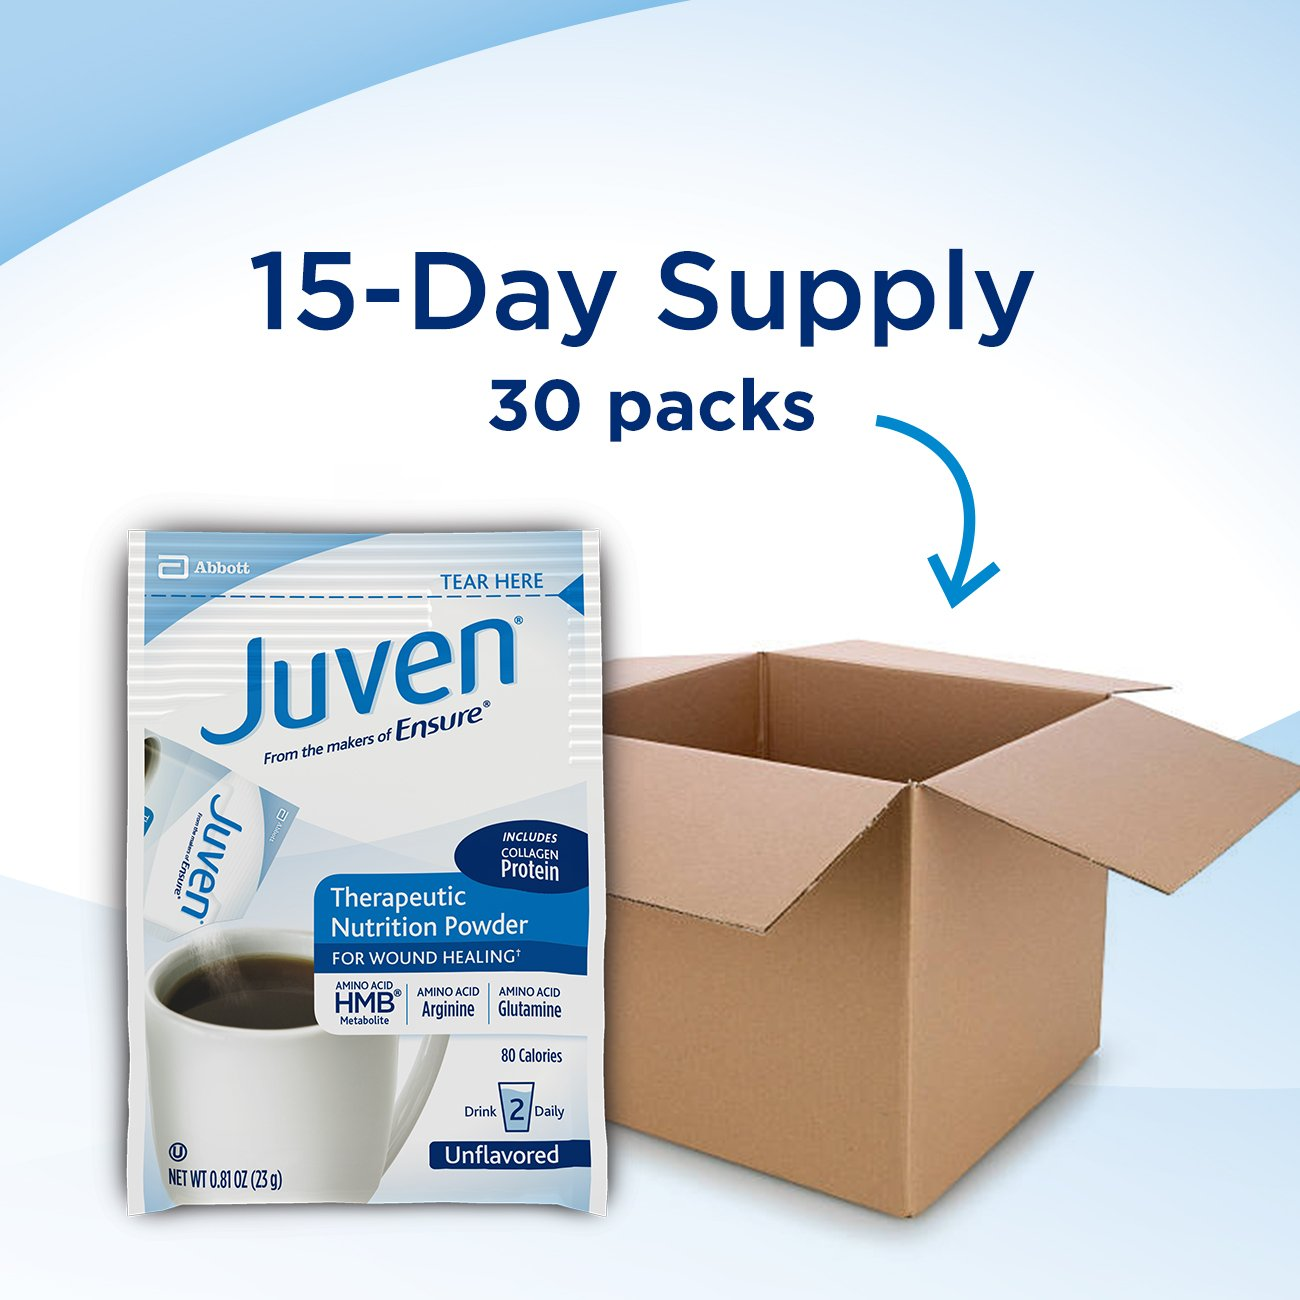 Juven Therapeutic Nutrition Drink Mix Powder for Wound Healing Includes Collagen Protein, Unflavored, 30 Count by Juven (Image #7)